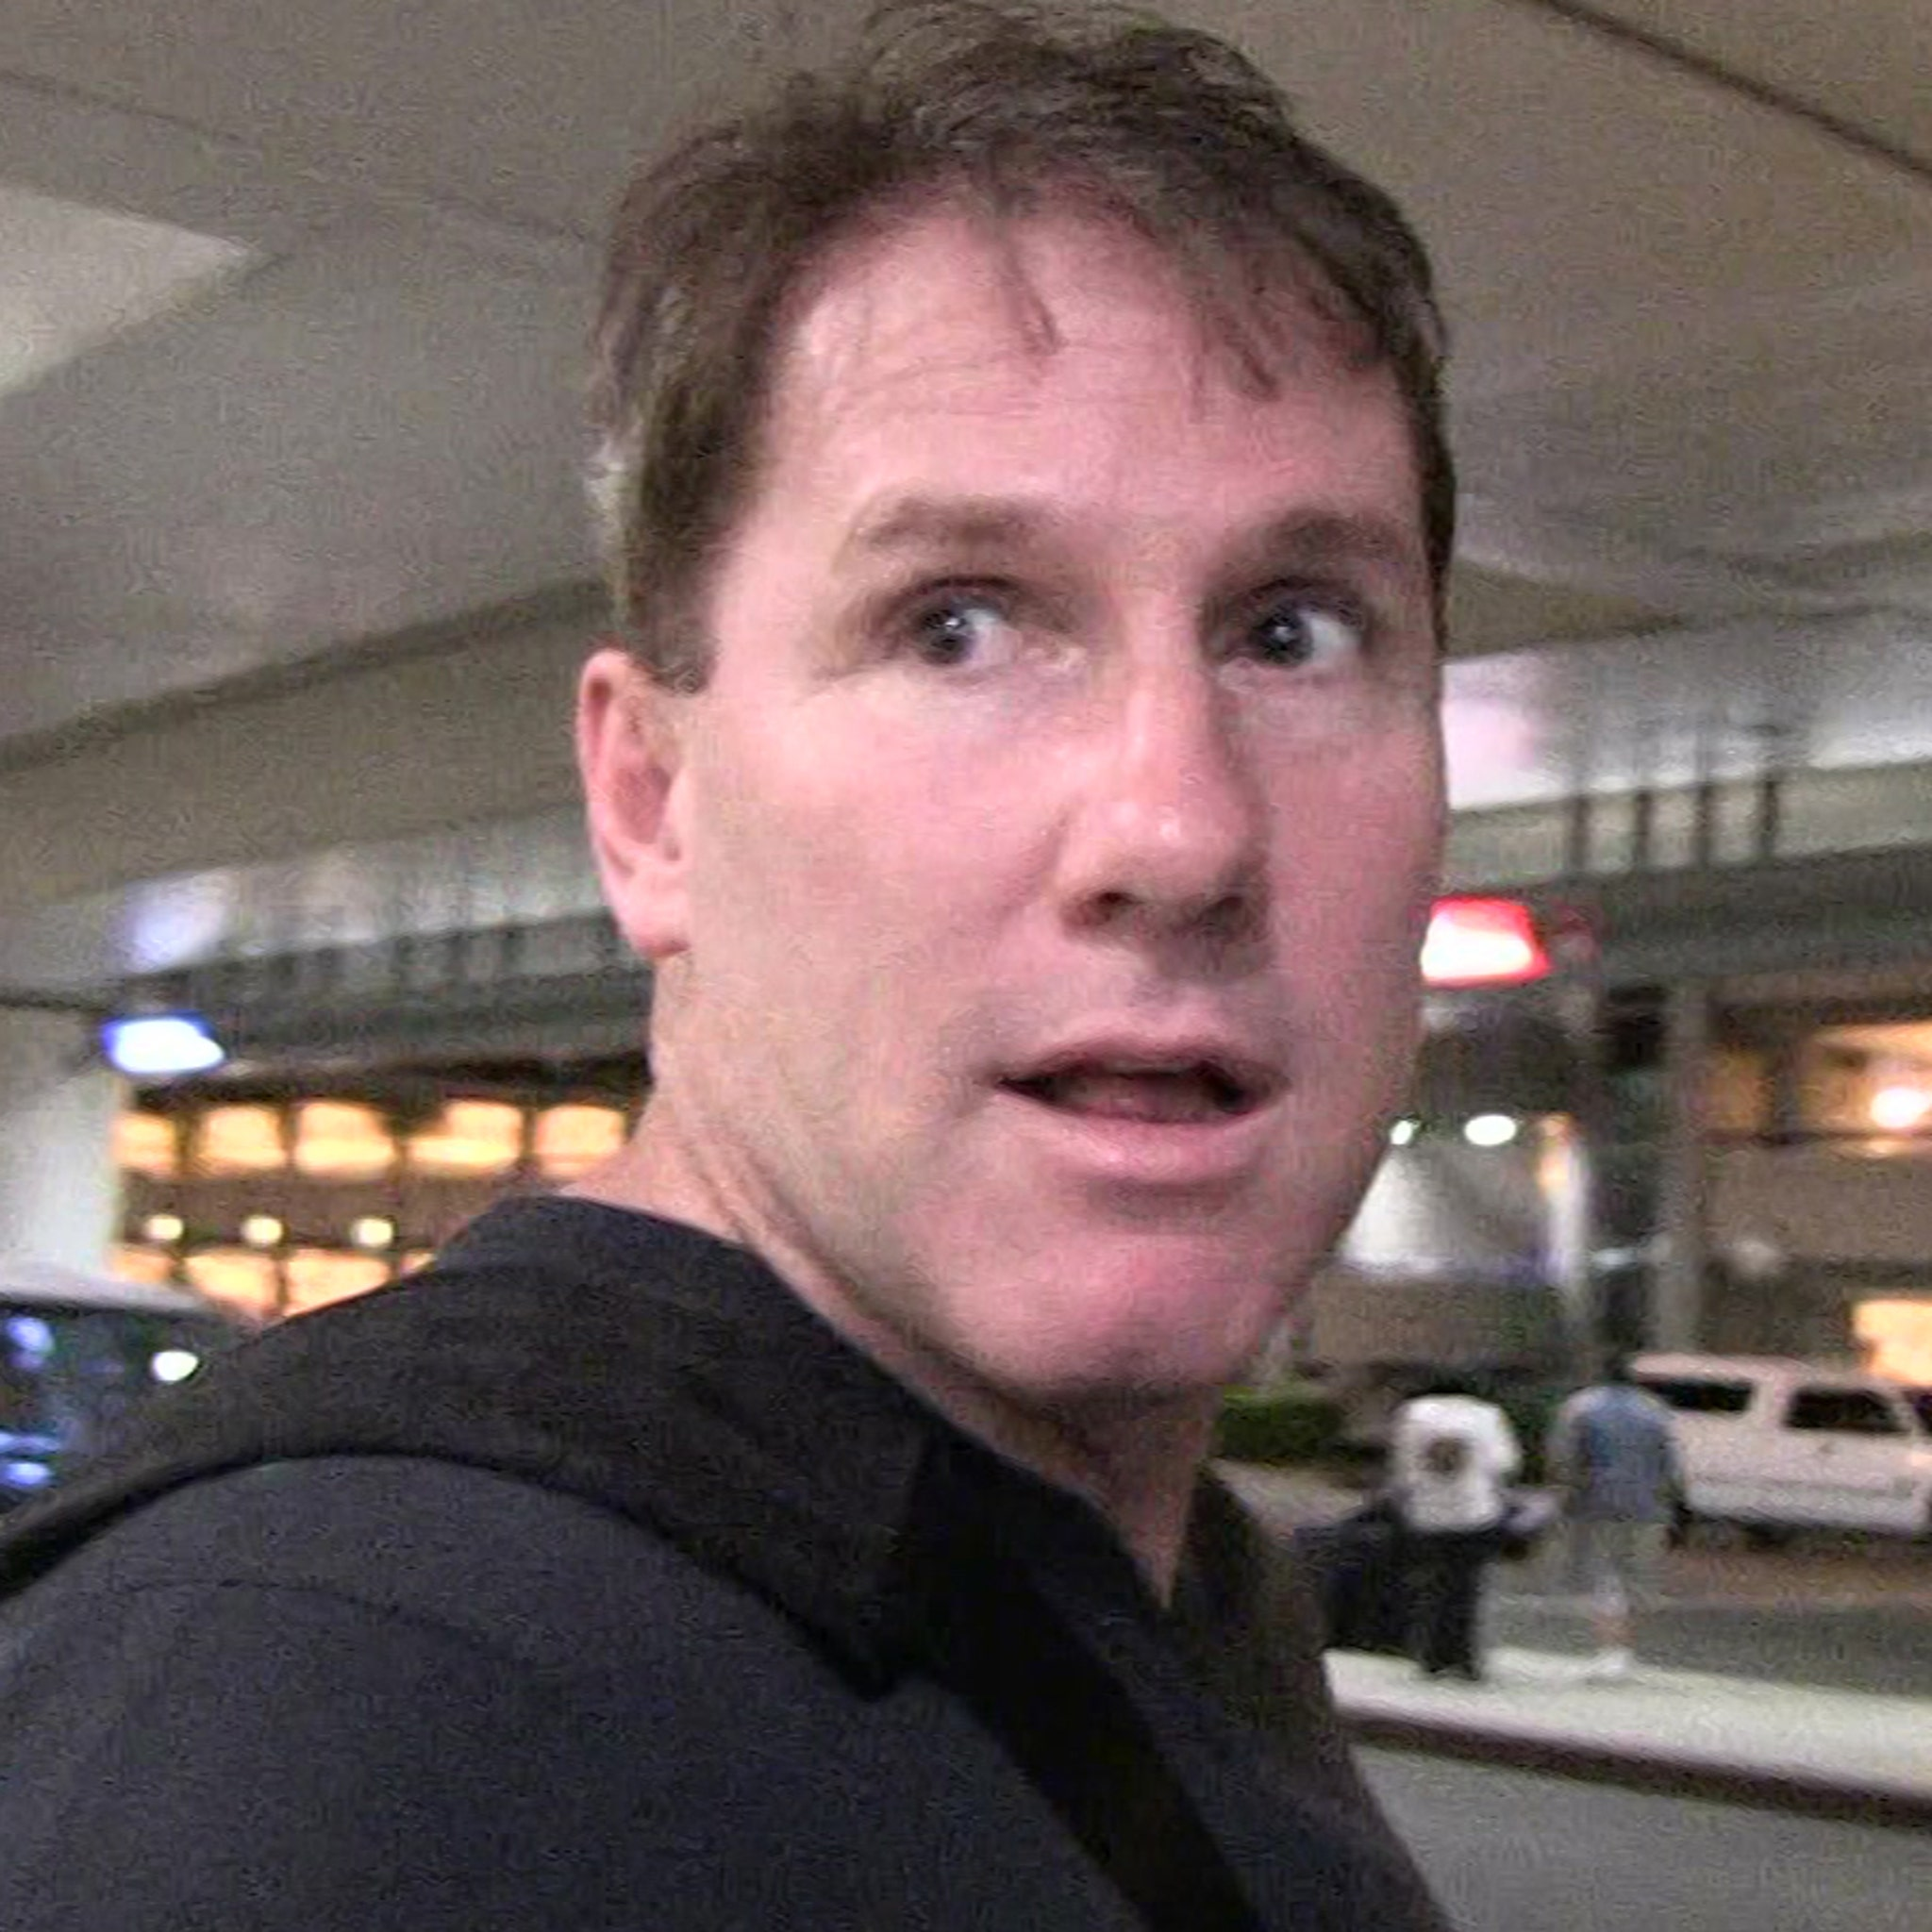 Nicholas Sparks Trying to Evict Brother's Ex-Wife From Home